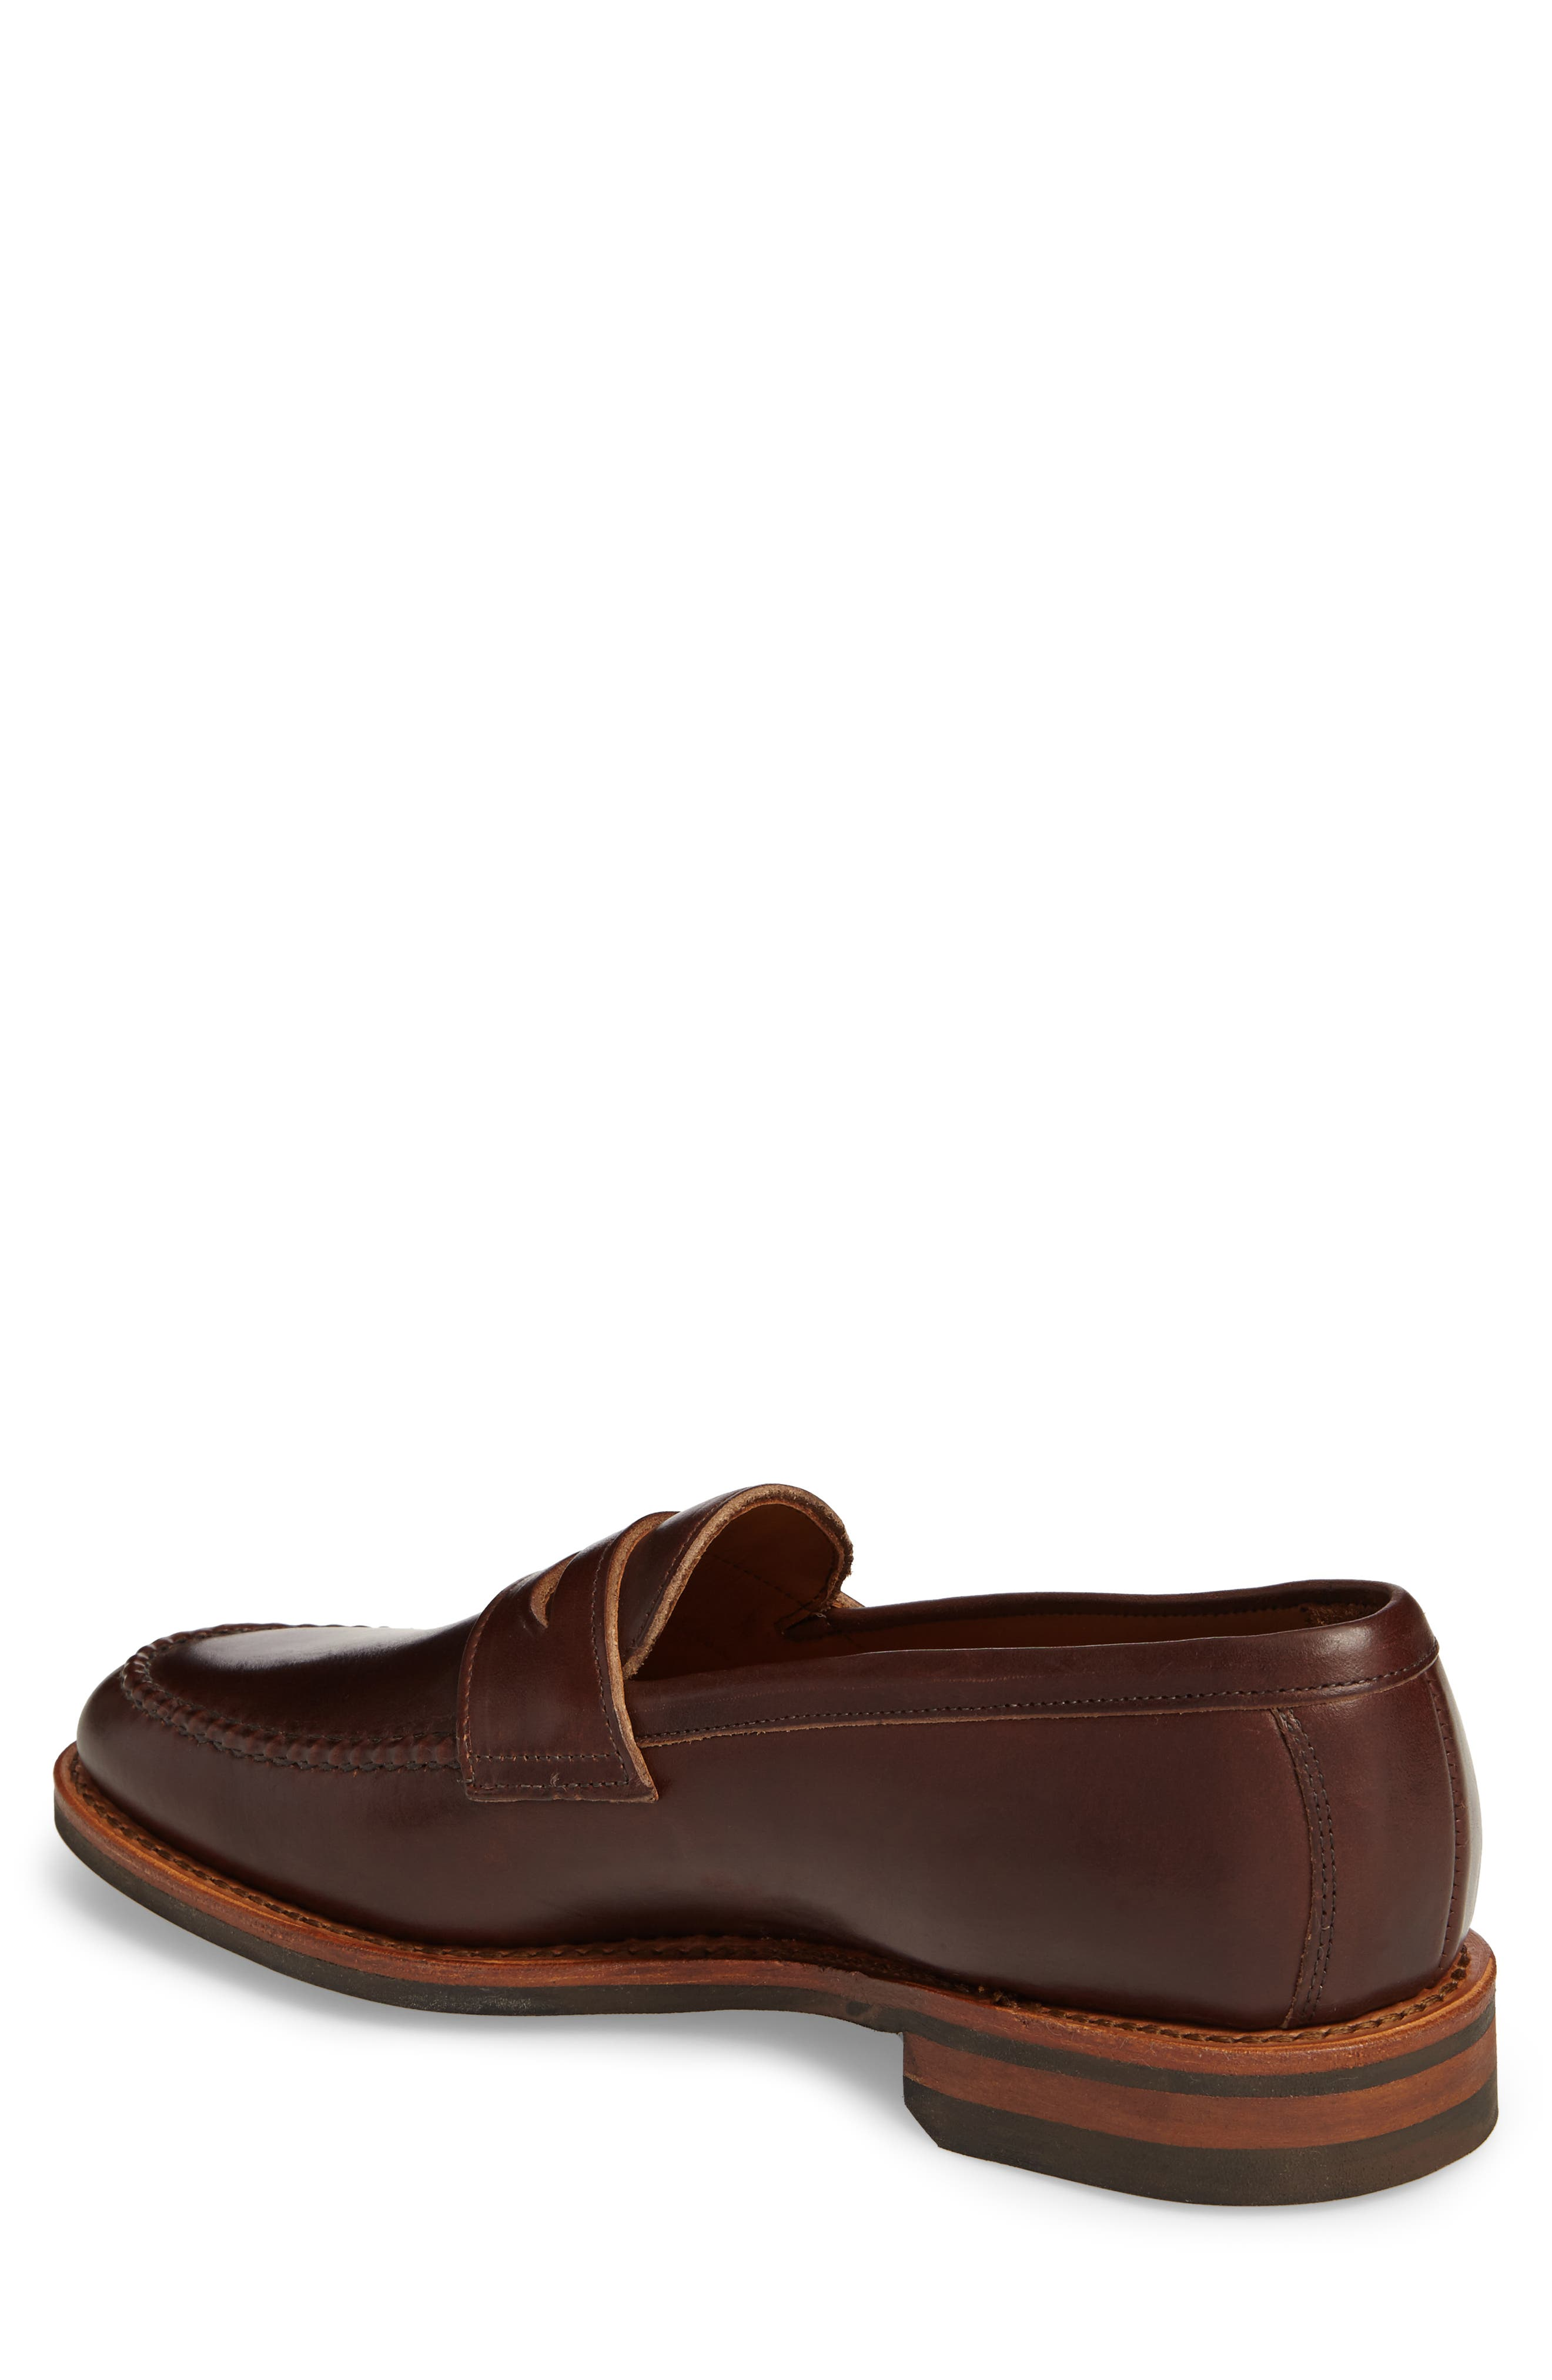 Addison Penny Loafer,                             Alternate thumbnail 2, color,                             BROWN LEATHER